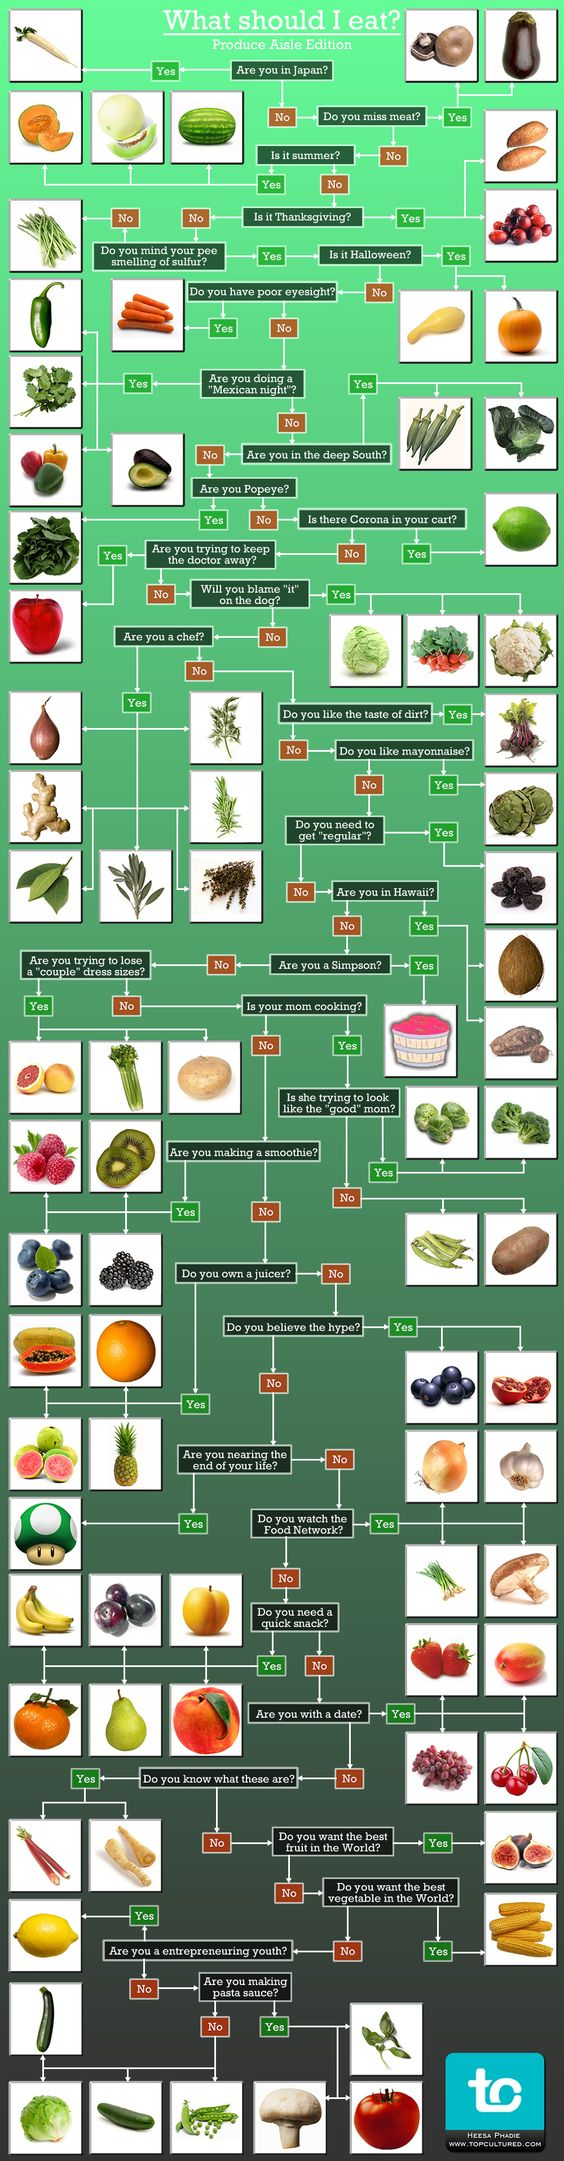 #Food #Infographic: What #produce should I eat?